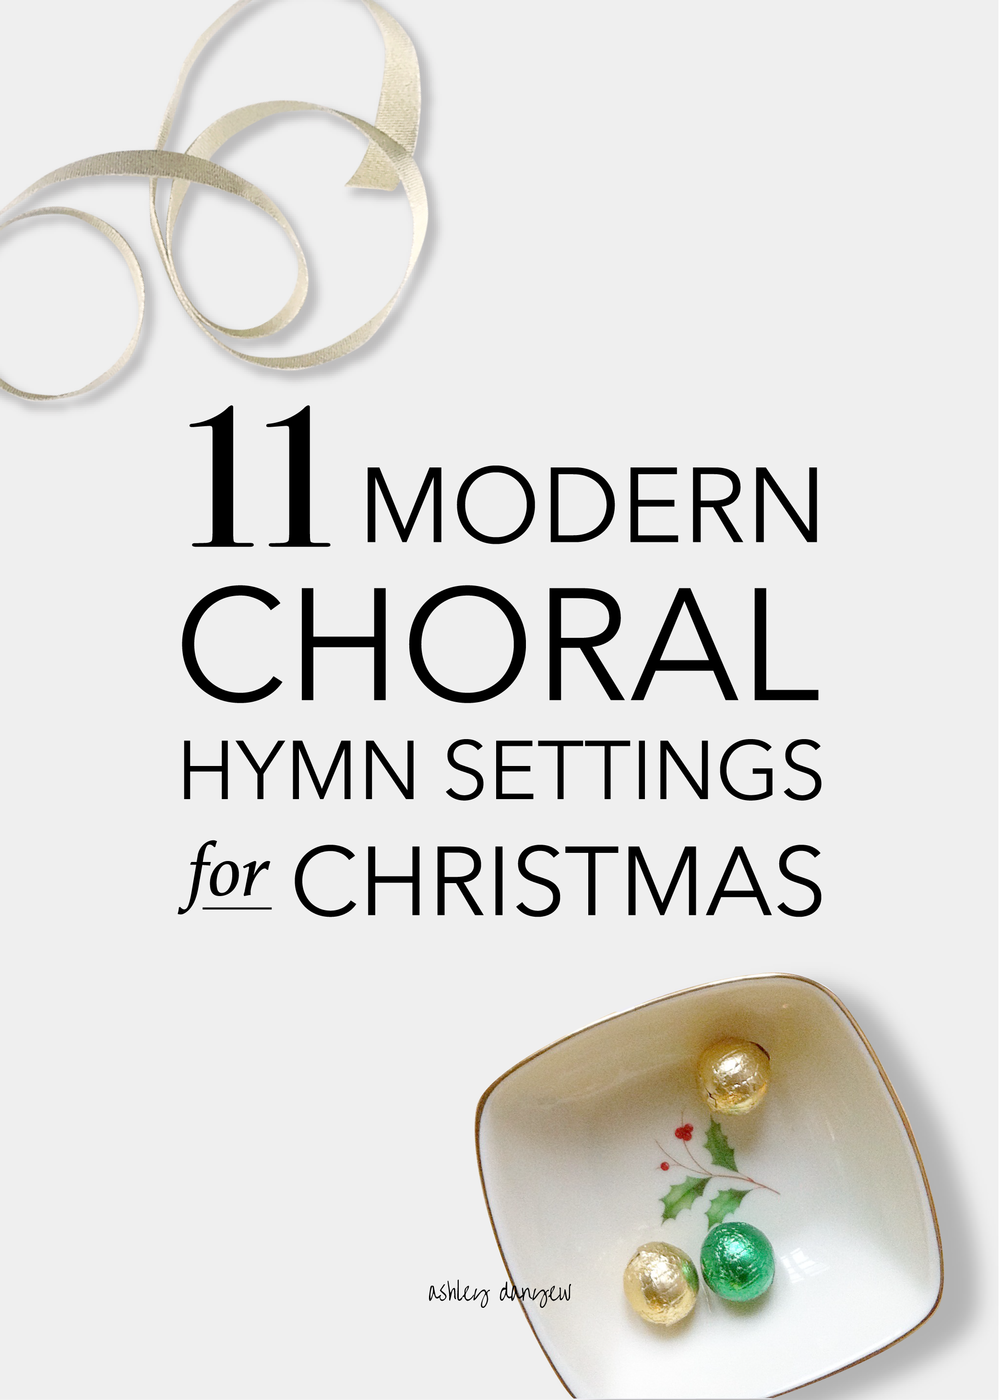 11 Modern Choral Hymn Settings for Christmas-54.png